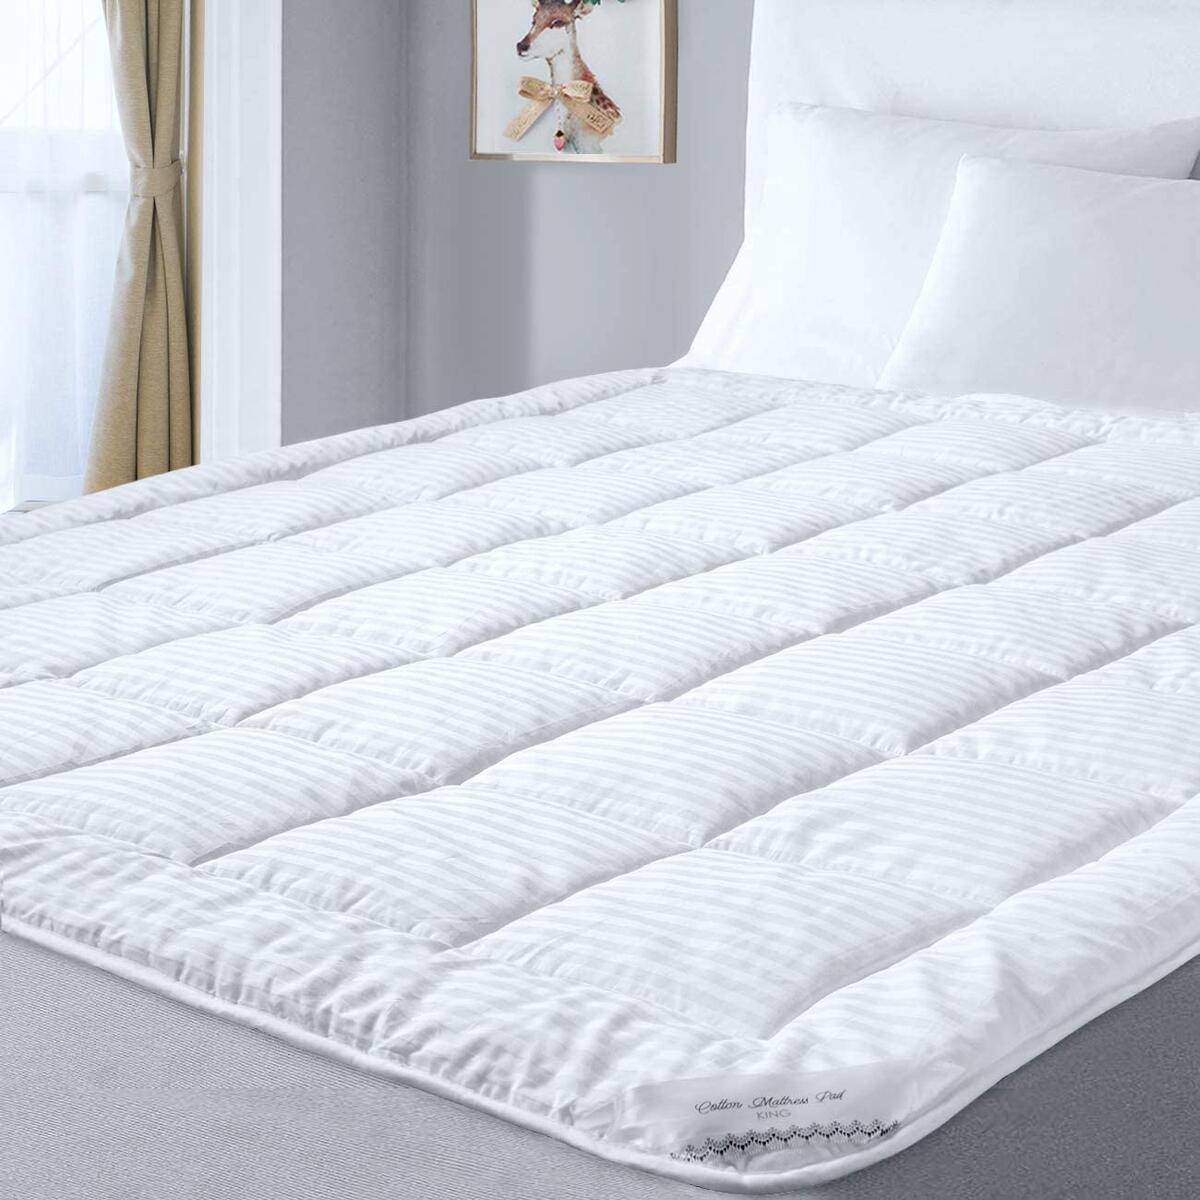 Mattress Pad forCKSizeBed with 100% Ventilated Cotton Cover and Down Alternative Microfiber Filling with Secure Anchor Band Design, Adaptsto Mattress Depthsfrom 6-22'', Machine Washable